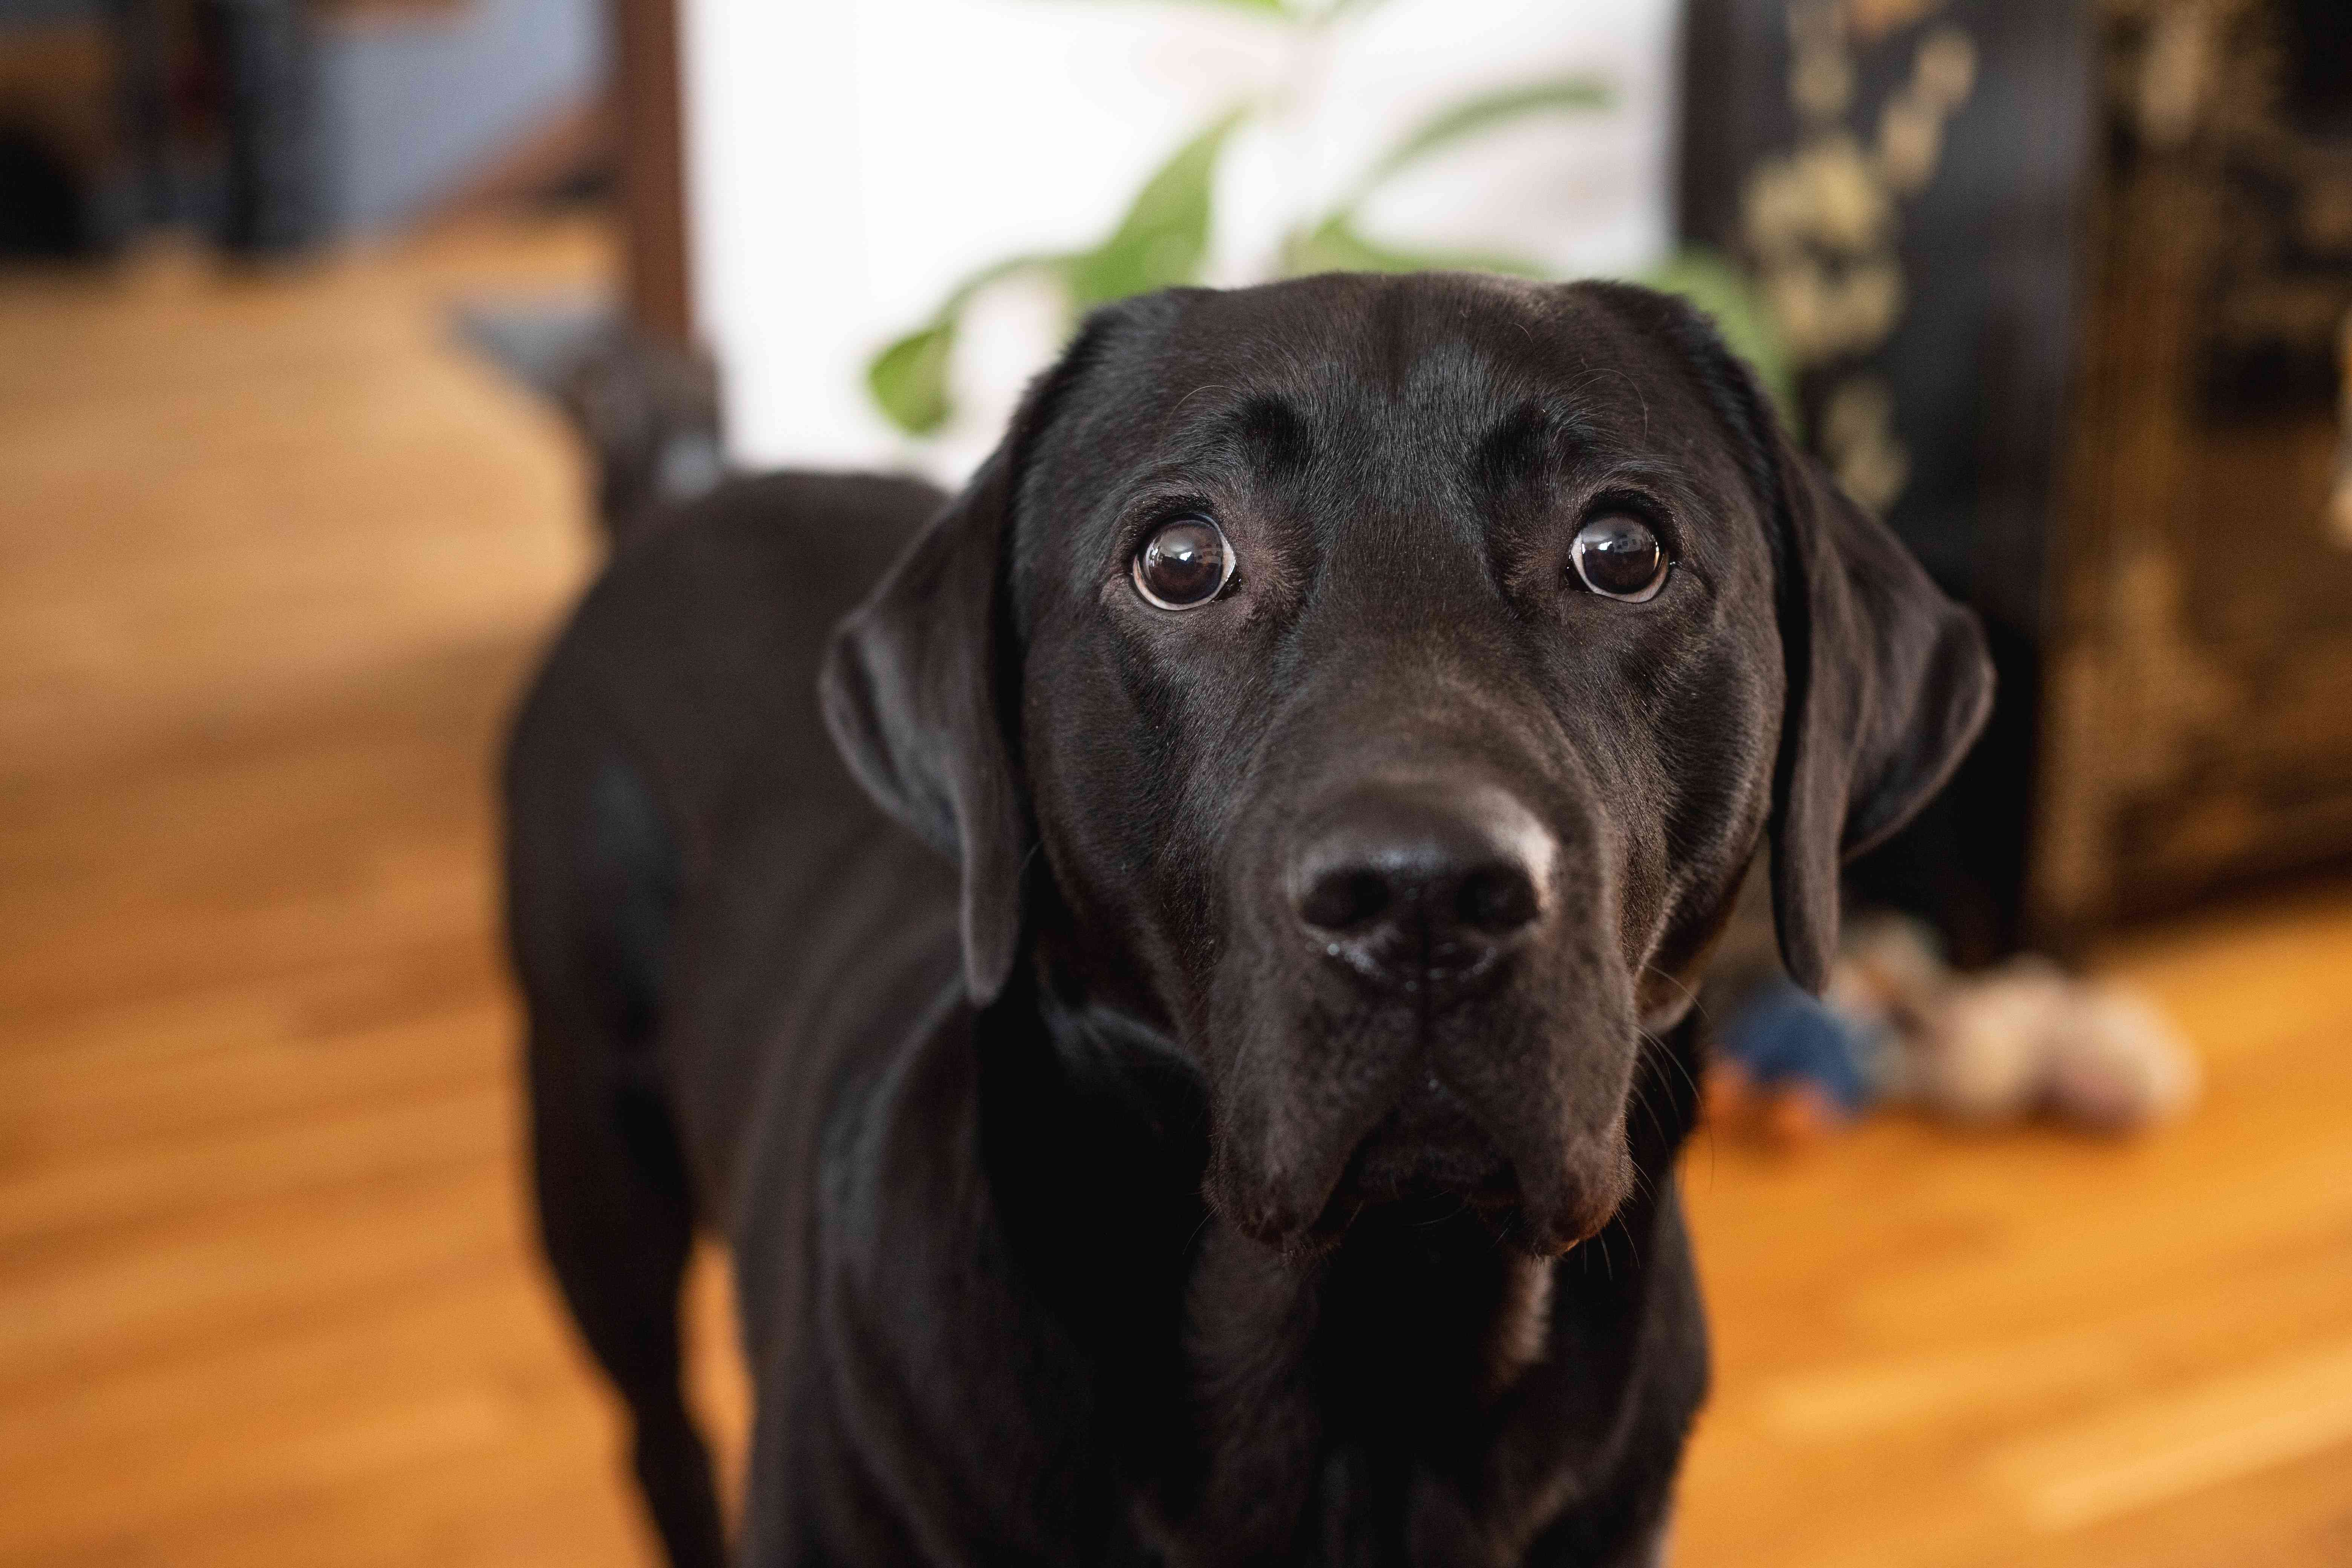 dog stares intently at camera while inside house